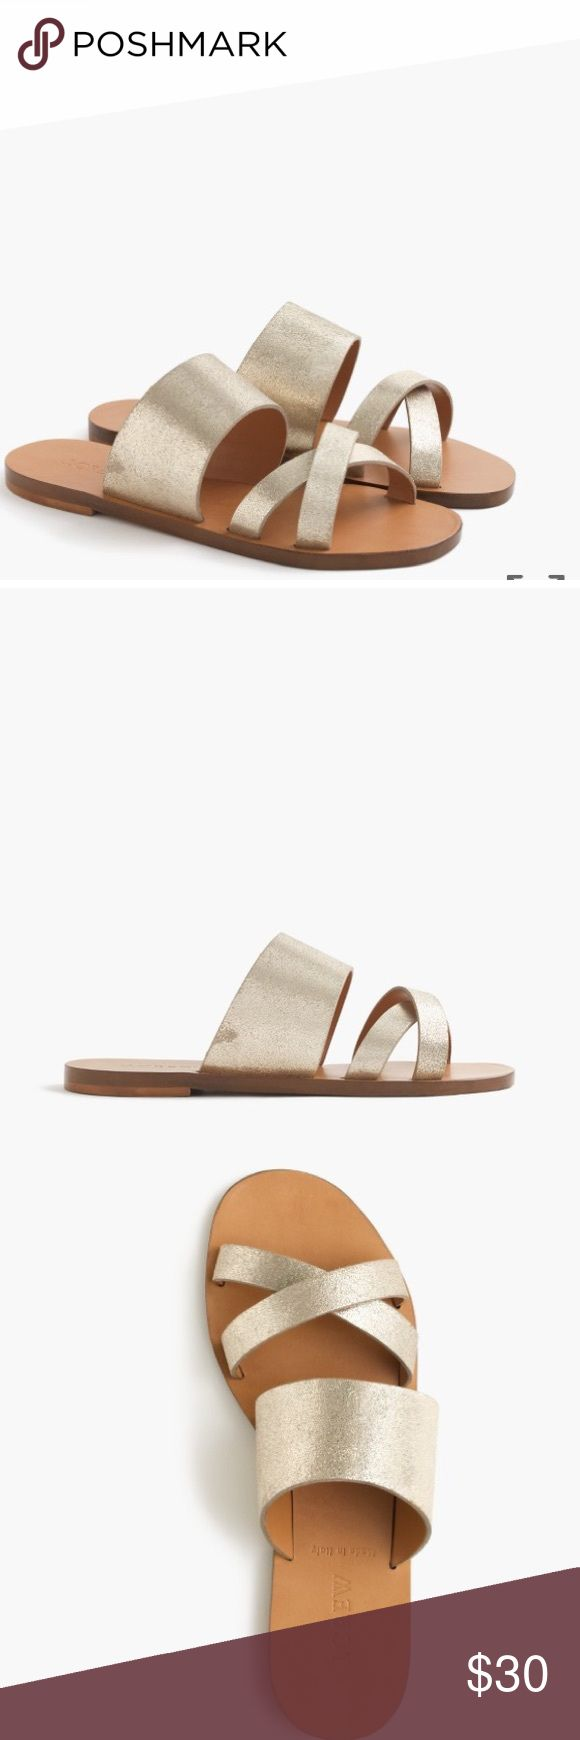 J.Crew Bali Metallic Slides 10 These slides are brand new without tags from J. Crew and would be the perfect addition to your summer wardrobe. J. Crew Shoes Sandals